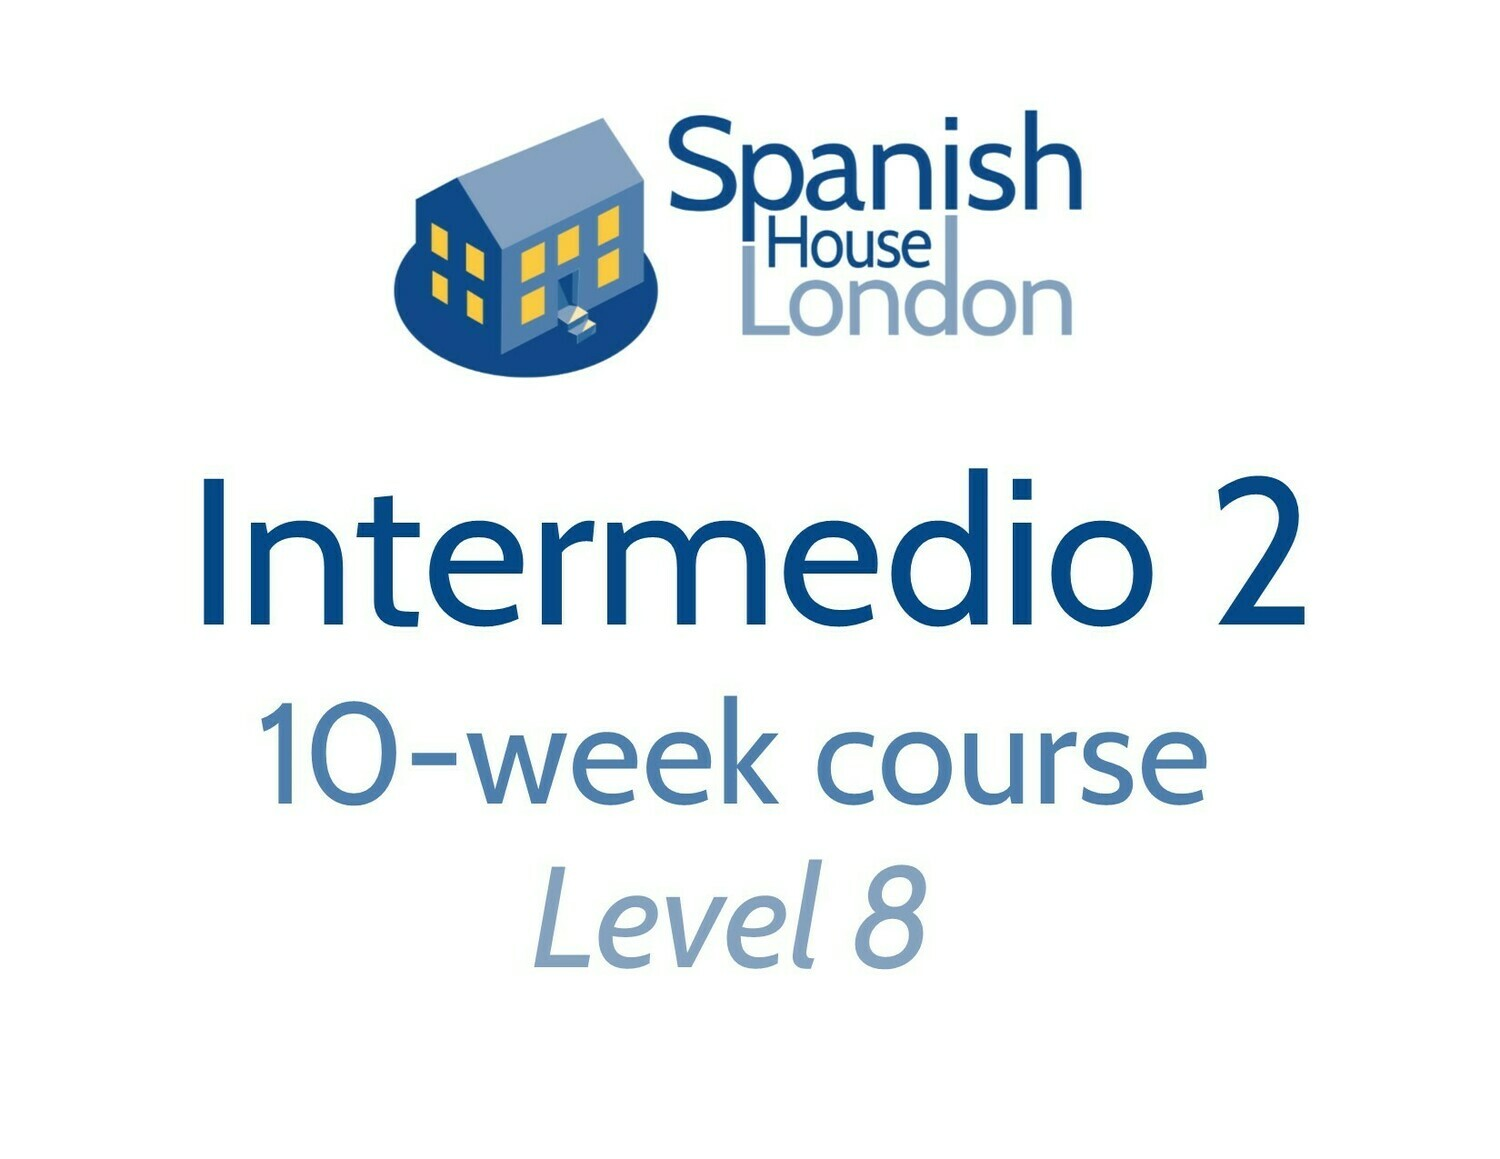 Intermedio 2 Course starting on 22nd March at 6pm